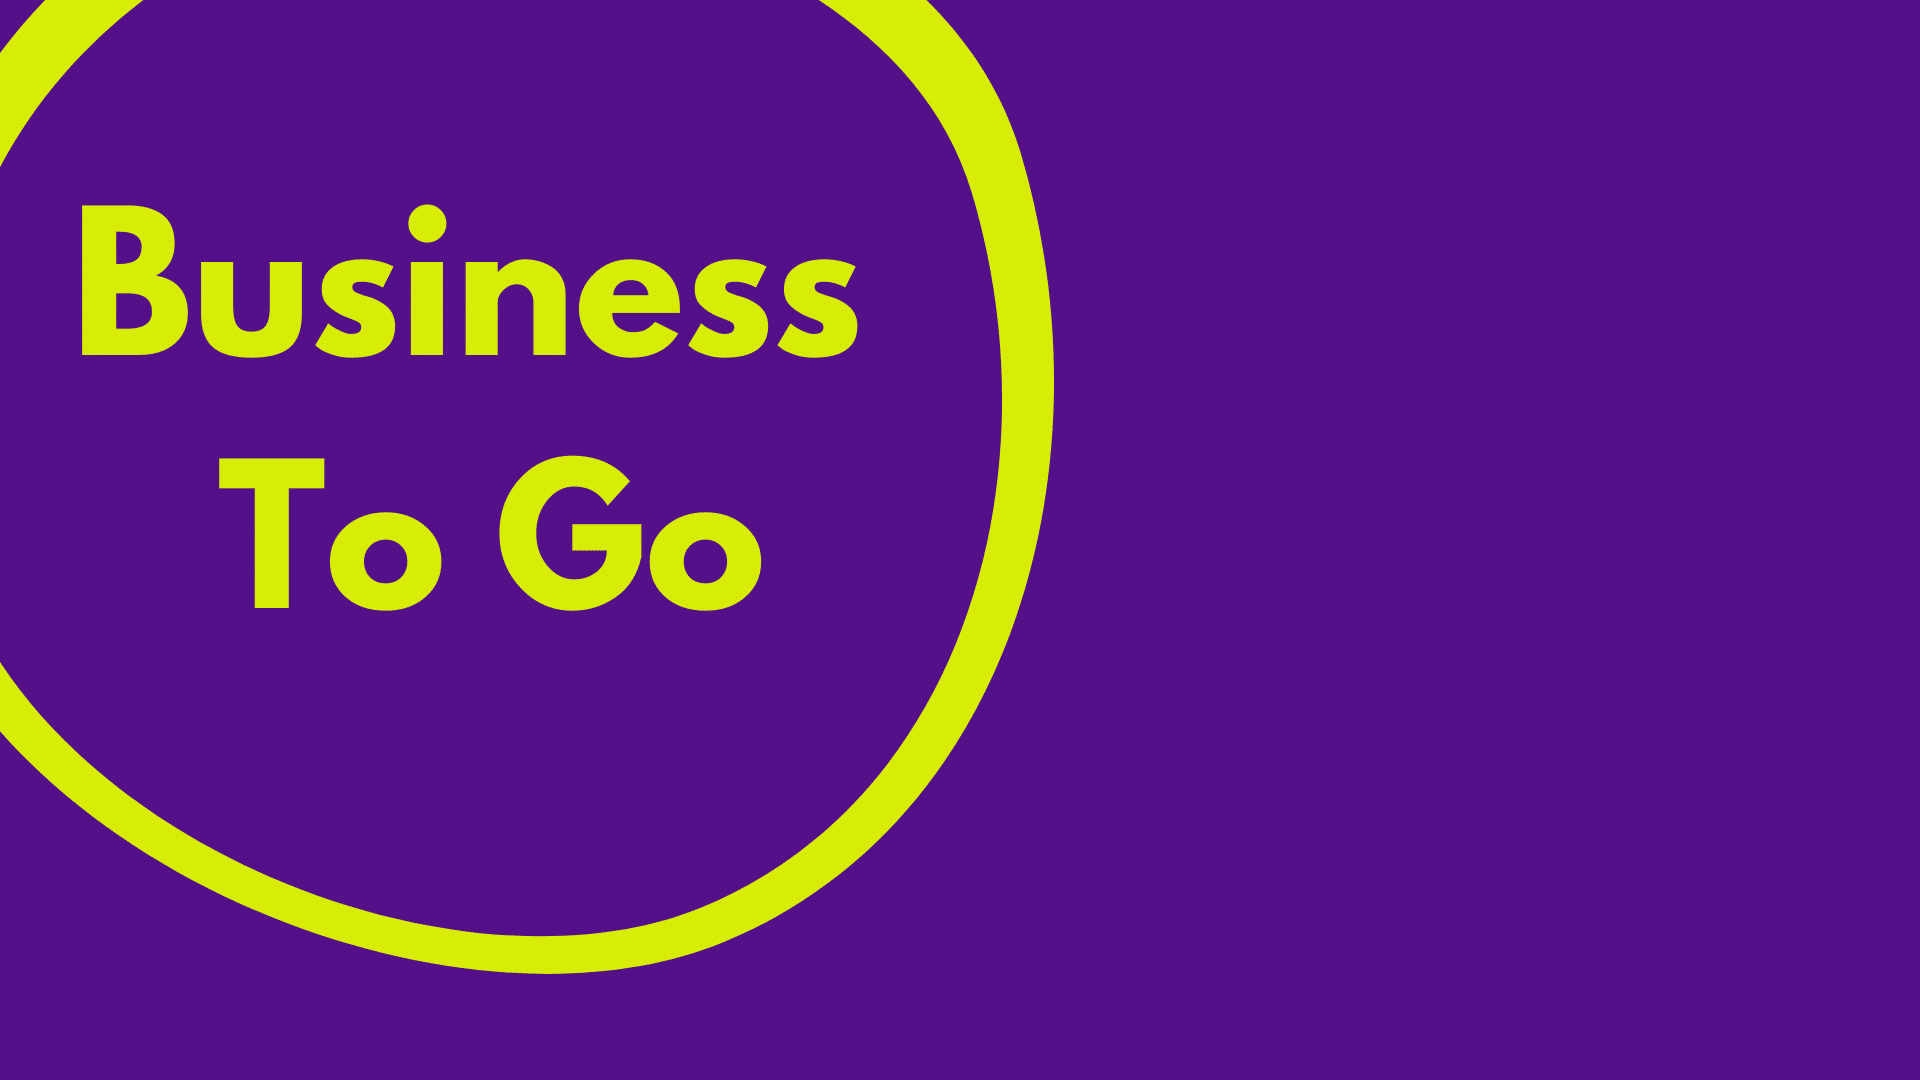 Business To Go